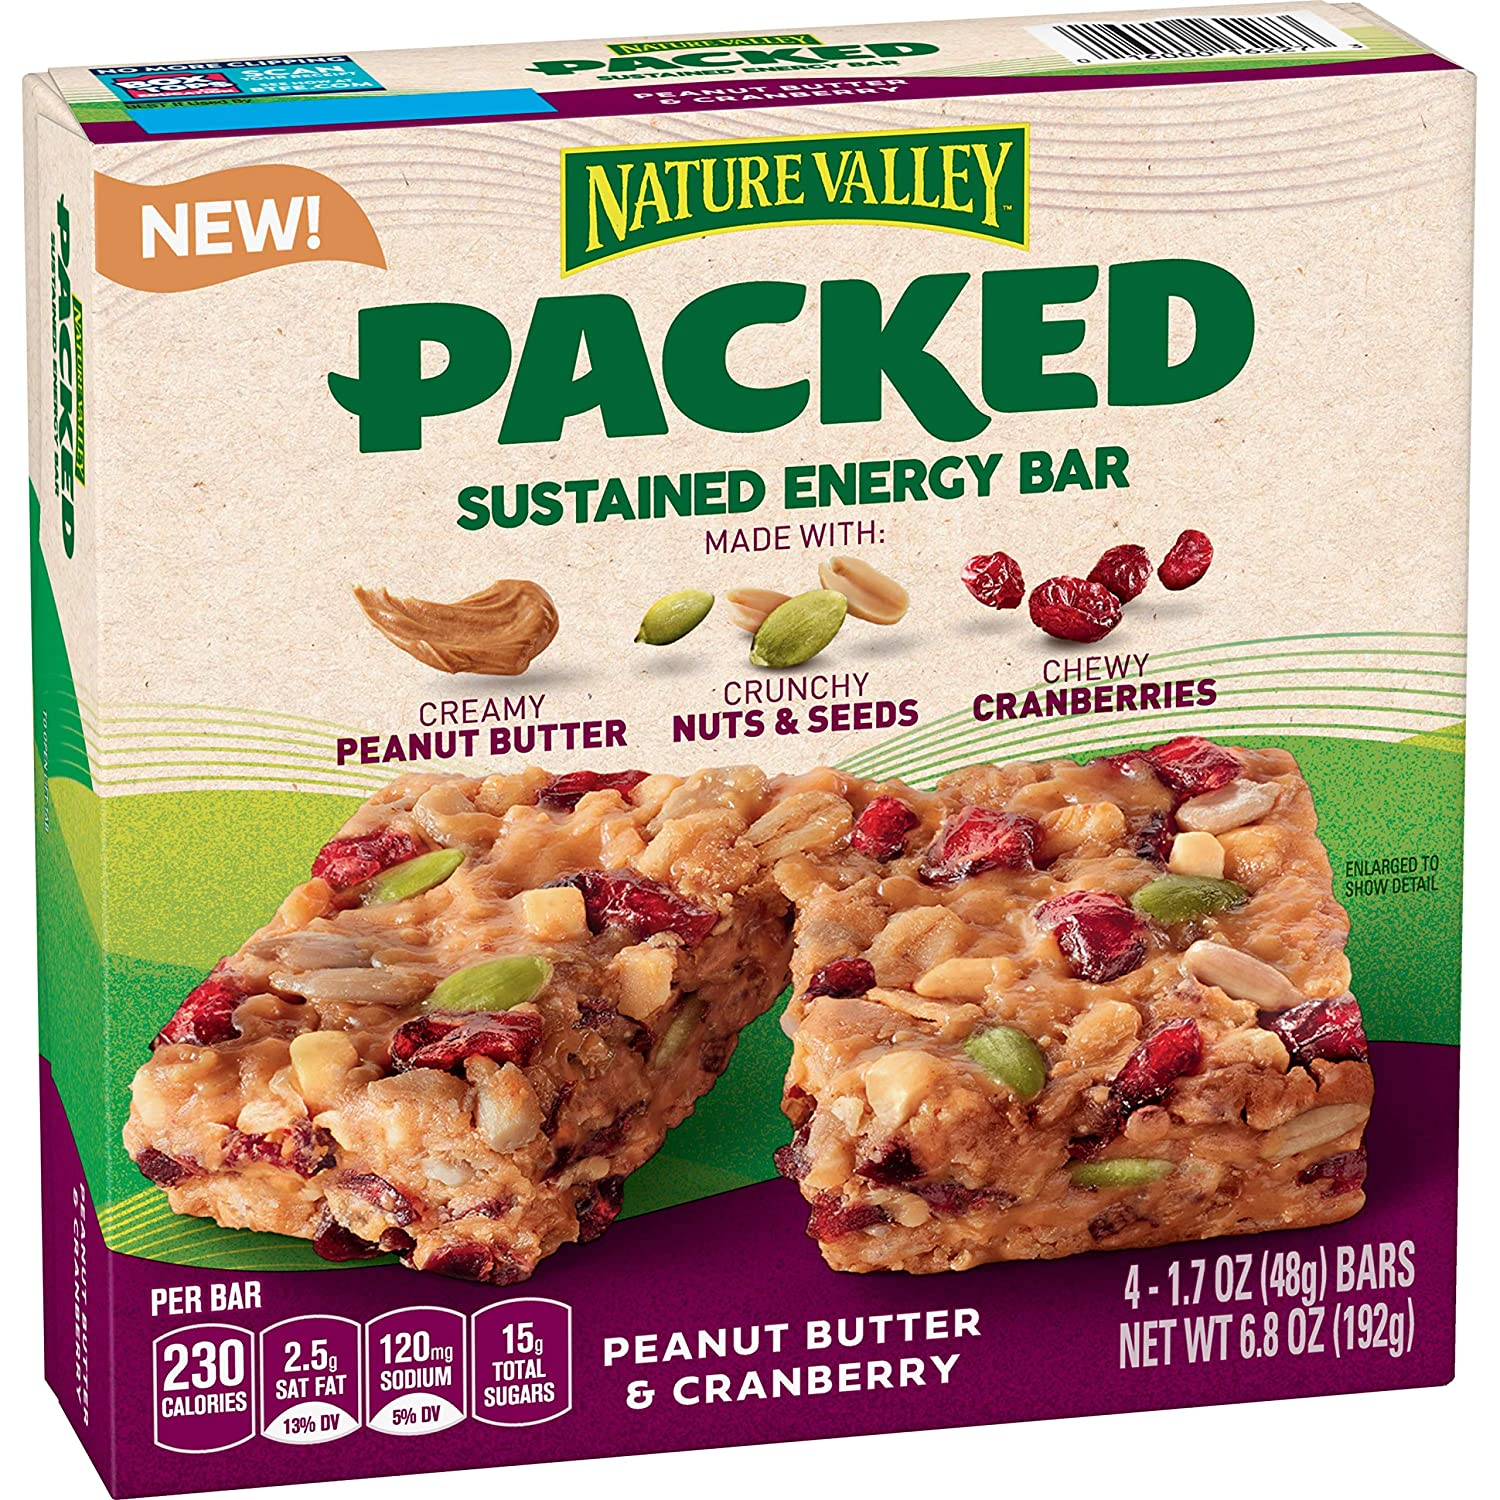 Nature Valley Packed Sustained Energy Bar Peanut Butter & Cranberry, 4 Count